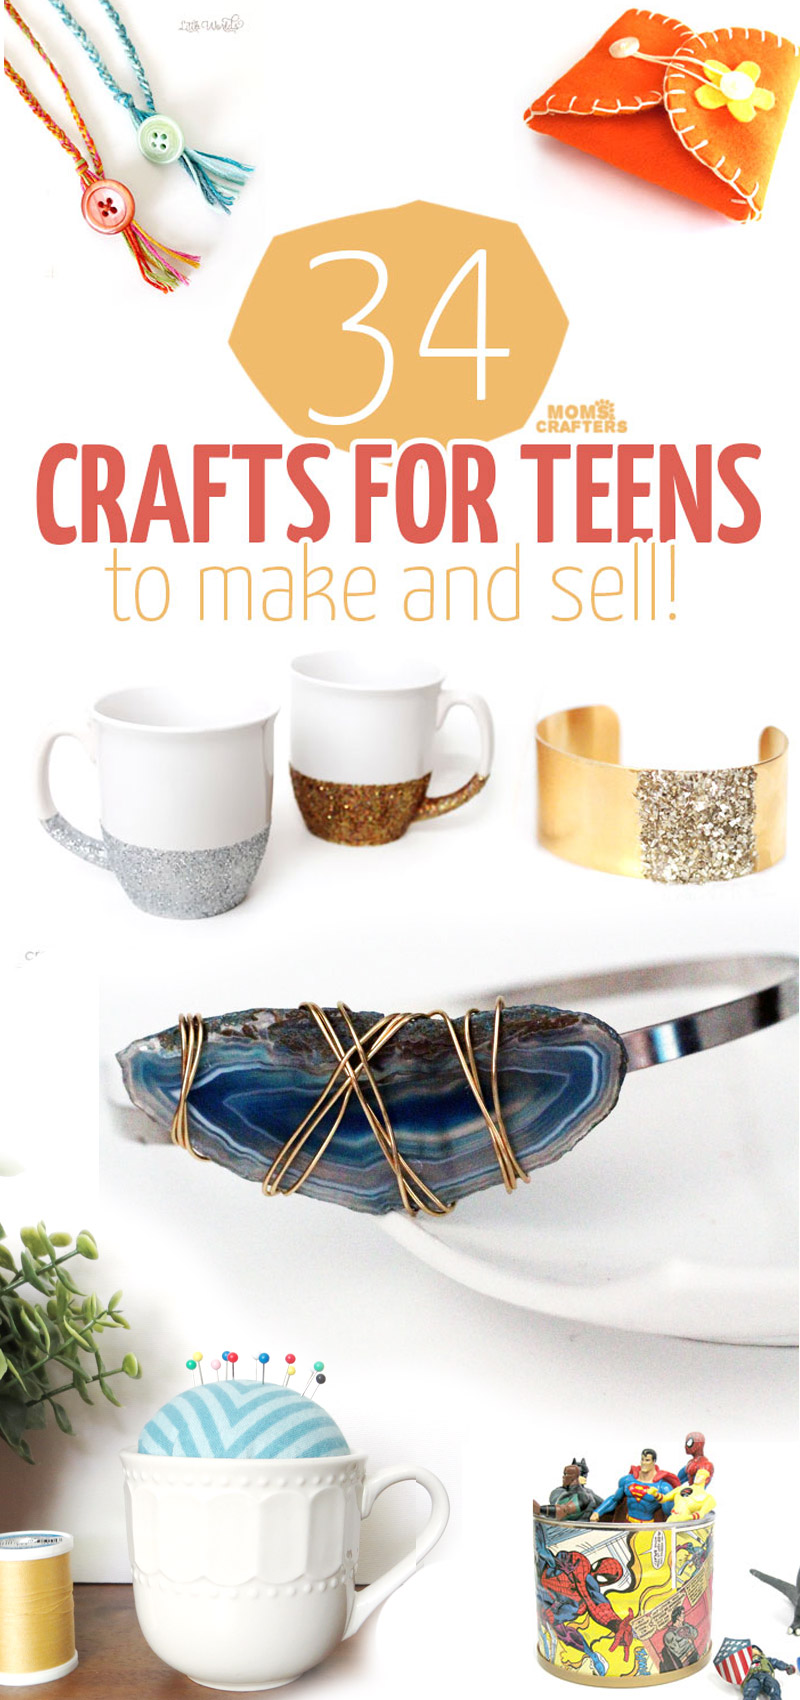 34 crafts for teens to make and sell moms and crafters for Where to sell crafts